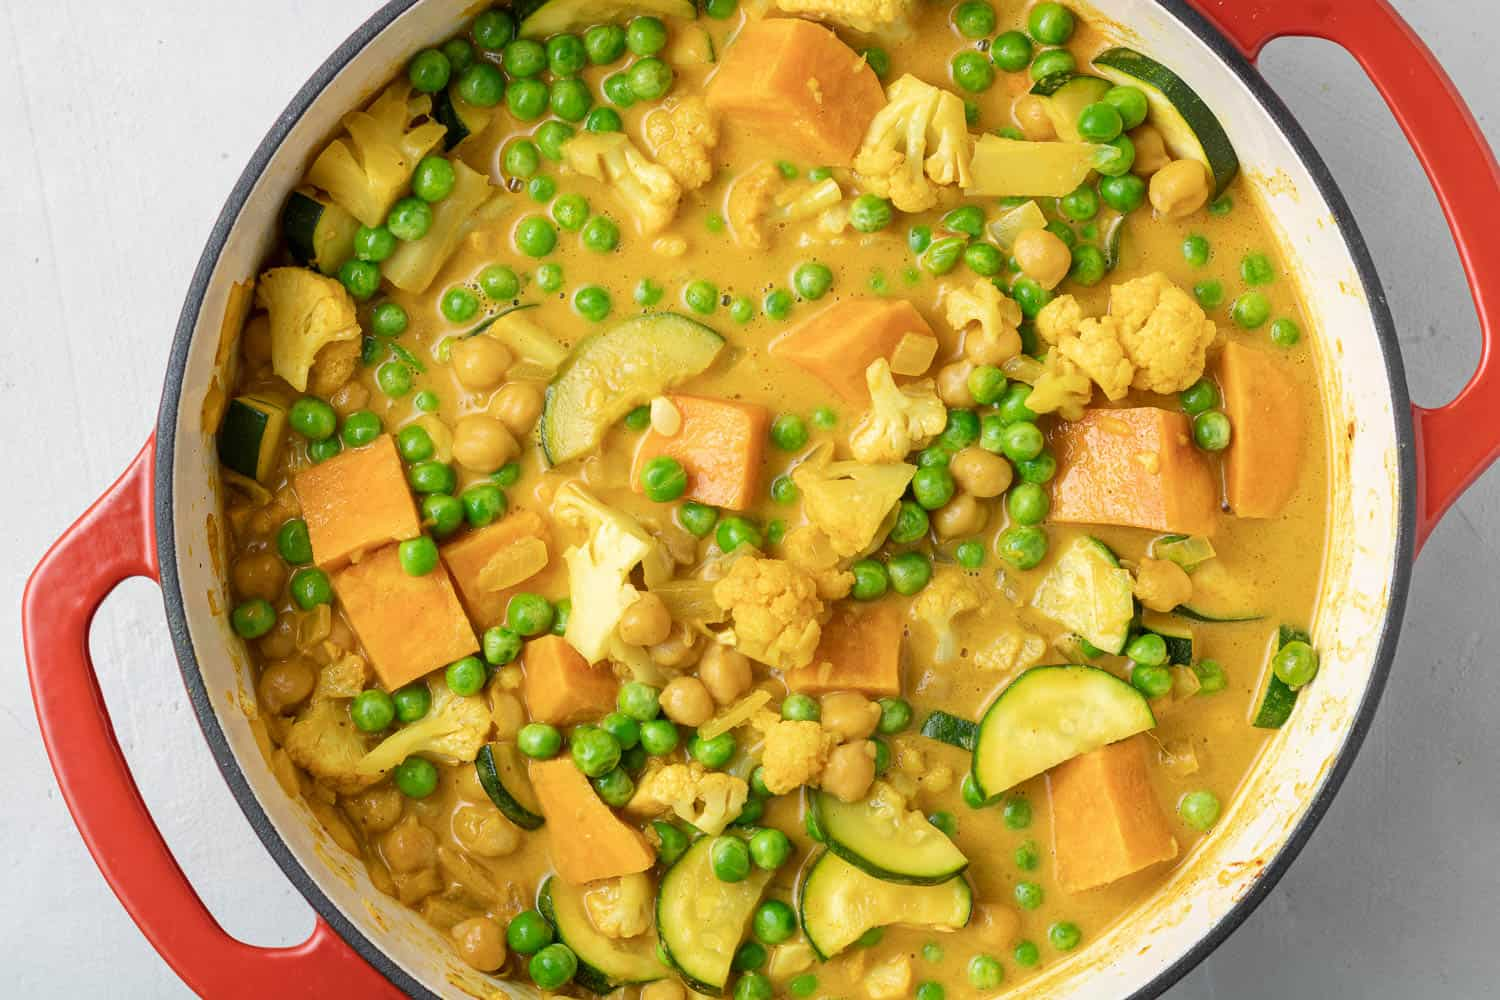 Peas added to a yellow orange curry in a red dutch oven.